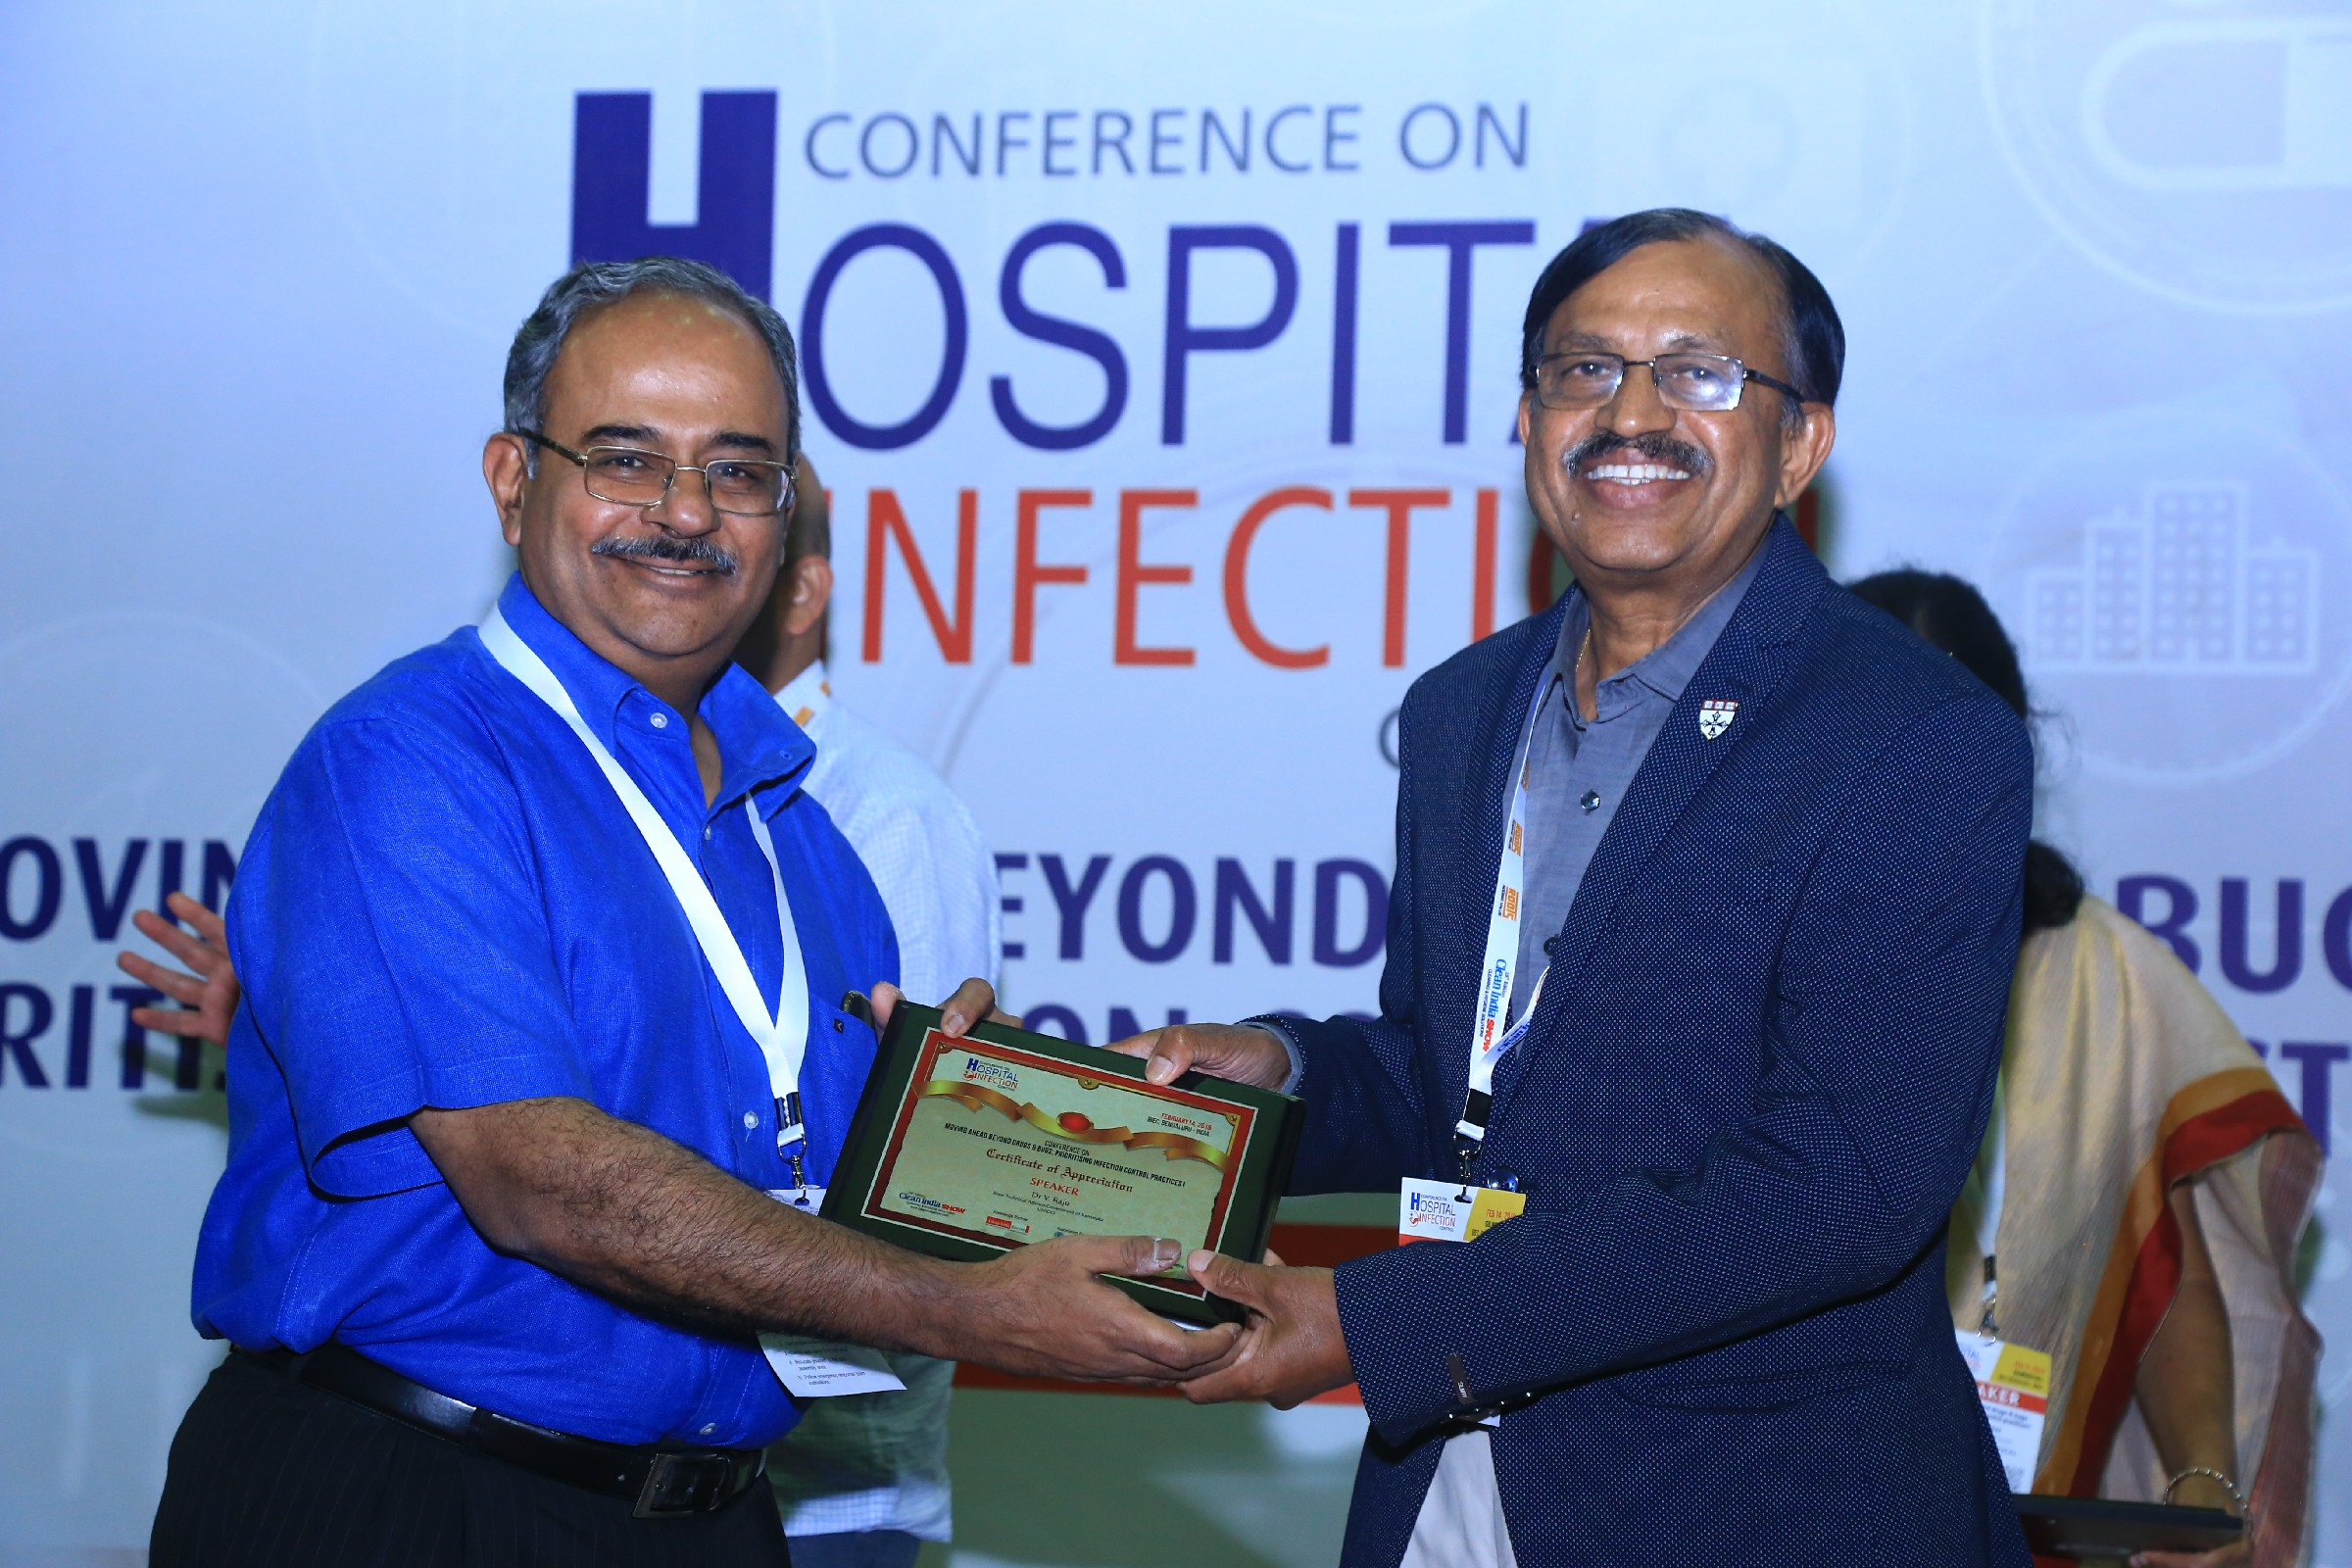 Dr-Iyer-Ranganathan-N-Senior-Consultant-Microbiology-and-Infectious-Diseases-Global-Hospitals-Dr-V.-Raju-State-Technical-Advisor-Government-of-Karnataka-UNIDO